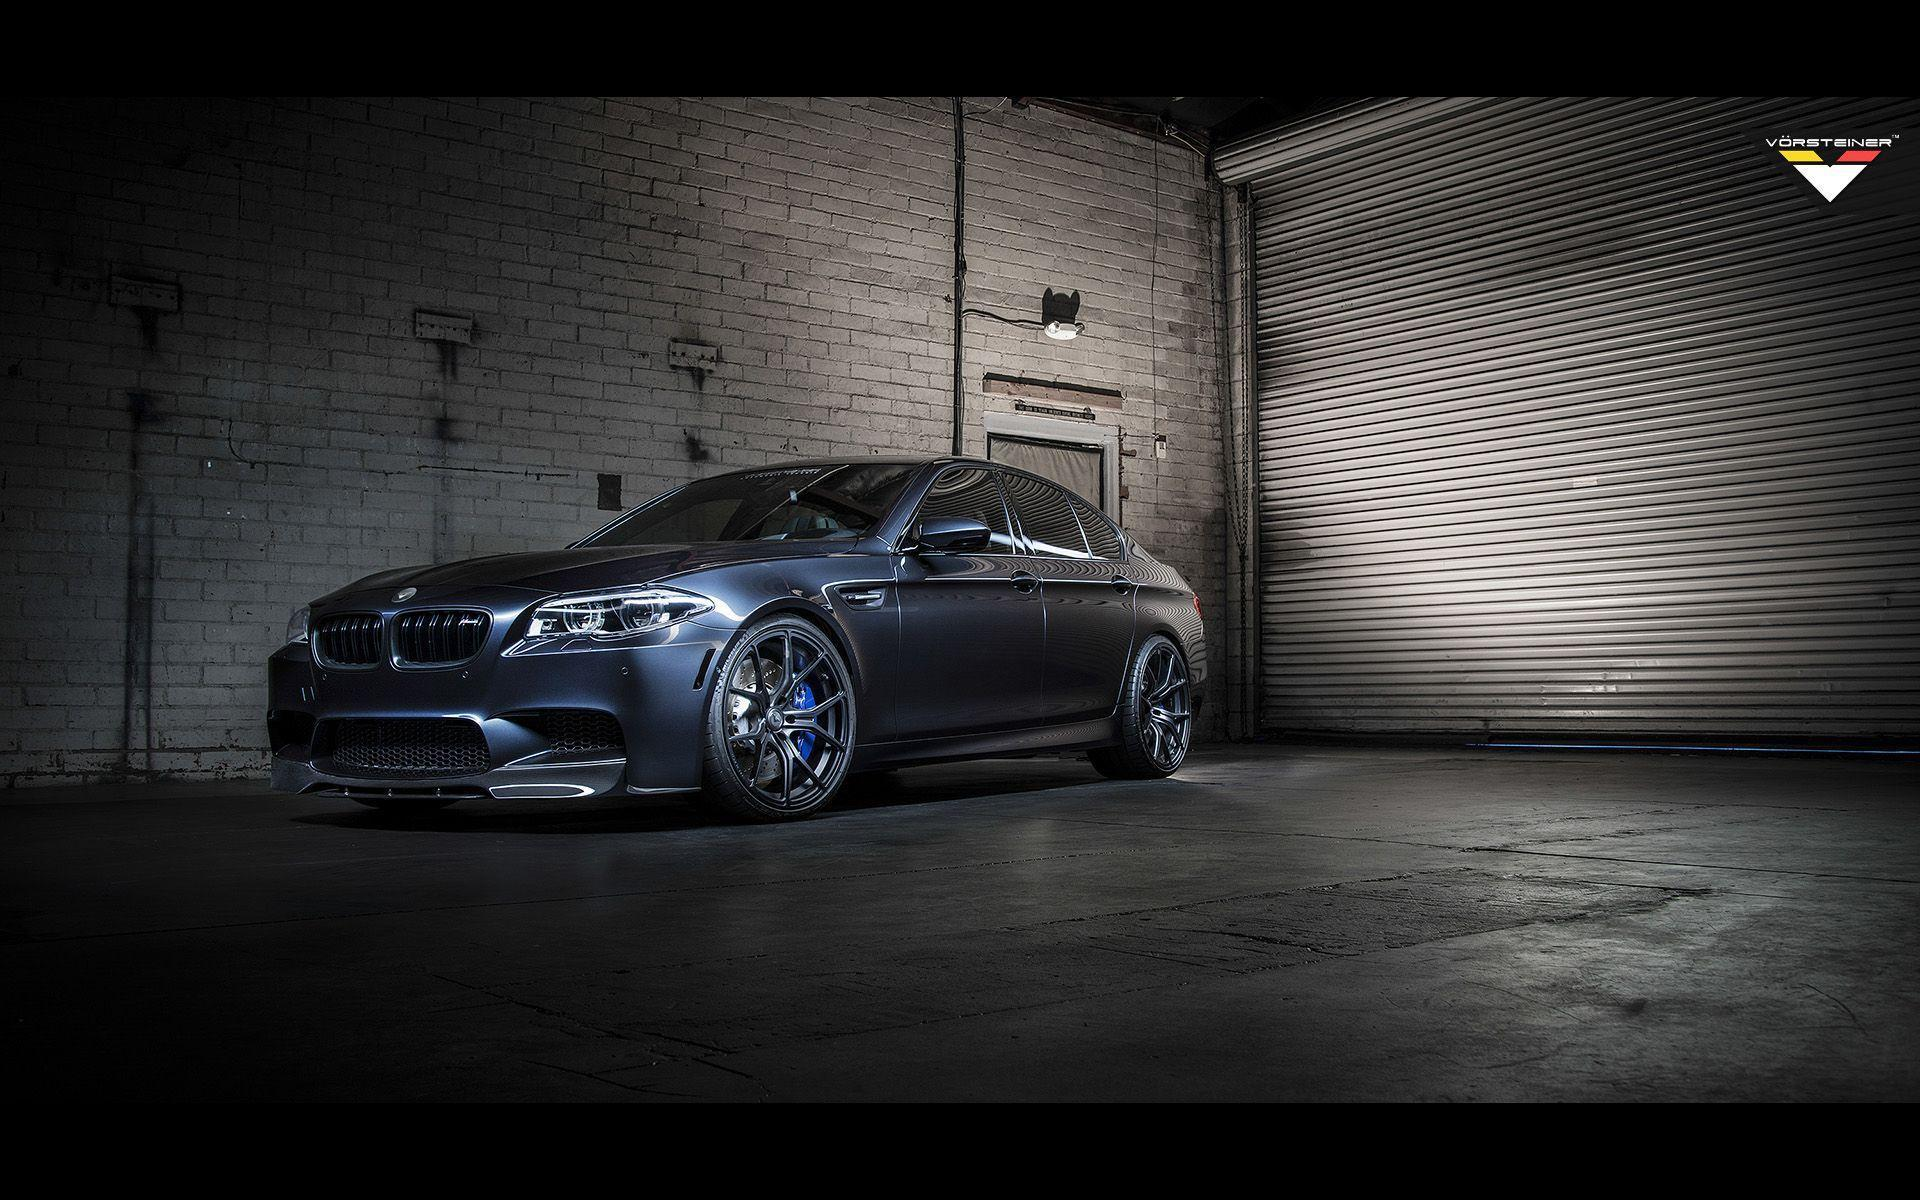 BMW M5 Wallpapers 1920x1200